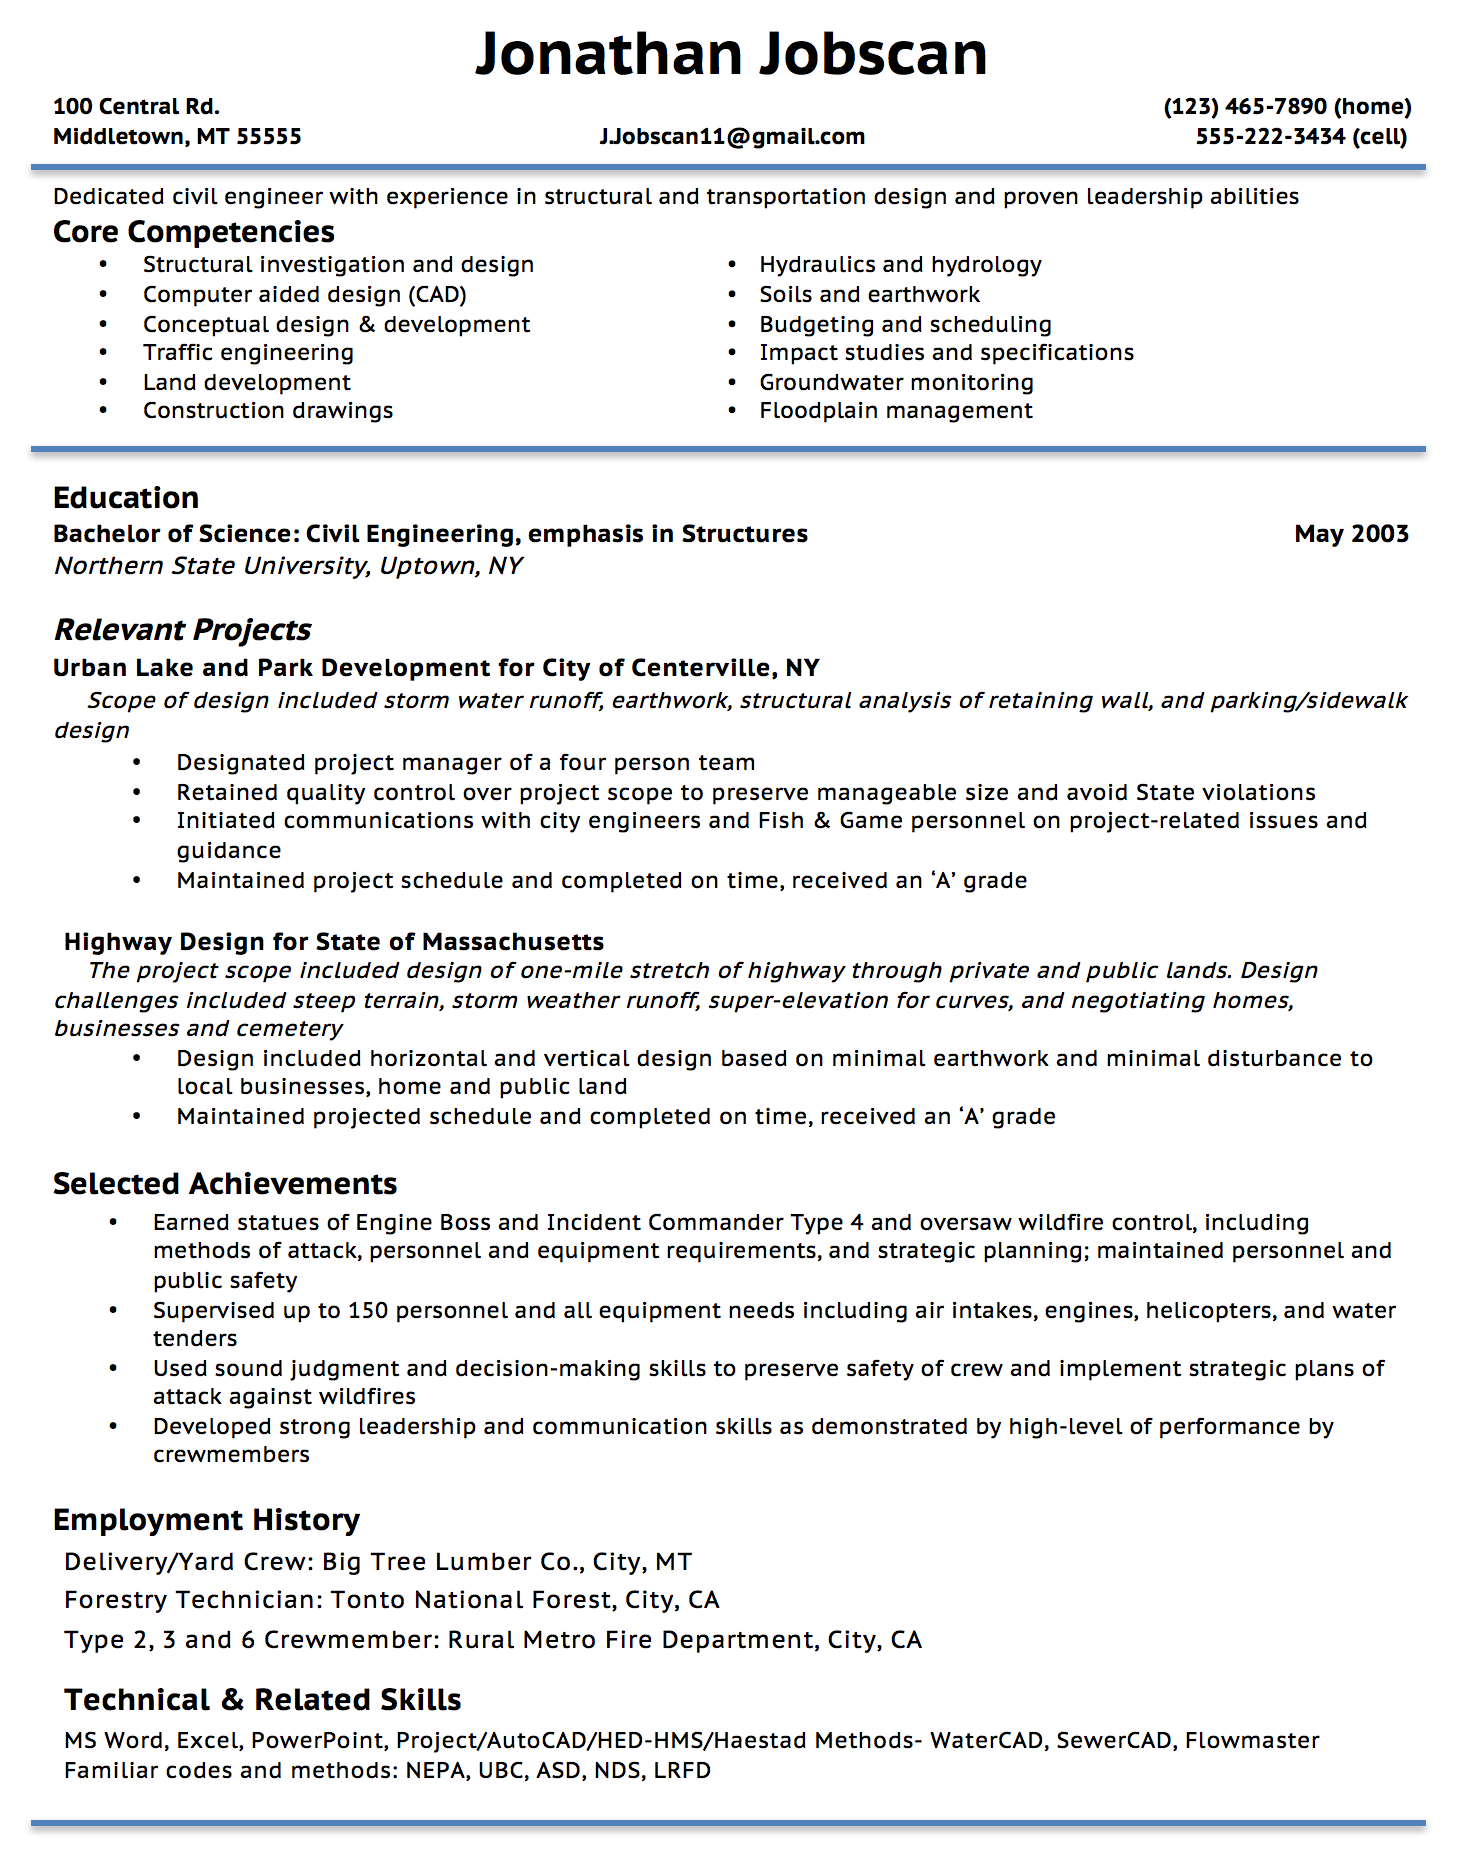 Picnictoimpeachus  Marvellous Resume Writing Guide  Jobscan With Glamorous Example Of A Functional Resume Format With Endearing Summa Cum Laude On Resume Also Legal Secretary Resume In Addition Skills And Abilities On A Resume And Resume Formatting Tips As Well As Resume Cheat Sheet Additionally Additional Skills On Resume From Jobscanco With Picnictoimpeachus  Glamorous Resume Writing Guide  Jobscan With Endearing Example Of A Functional Resume Format And Marvellous Summa Cum Laude On Resume Also Legal Secretary Resume In Addition Skills And Abilities On A Resume From Jobscanco